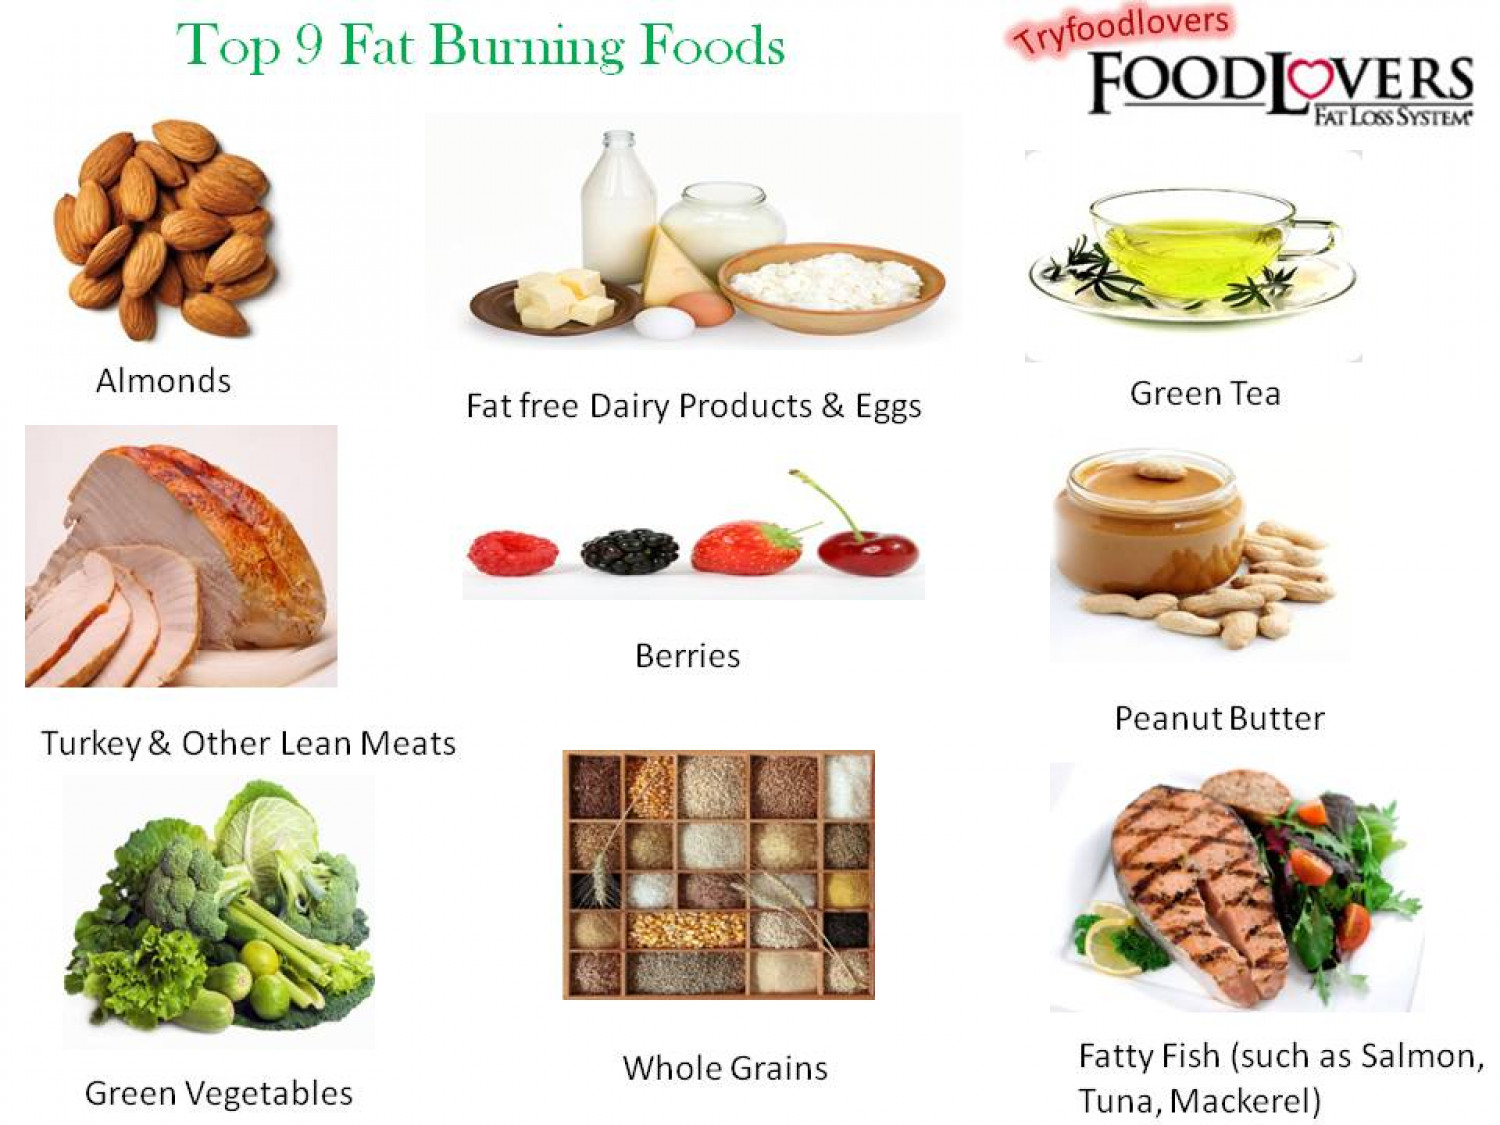 Top 9 Fat Burning Foods Infographic